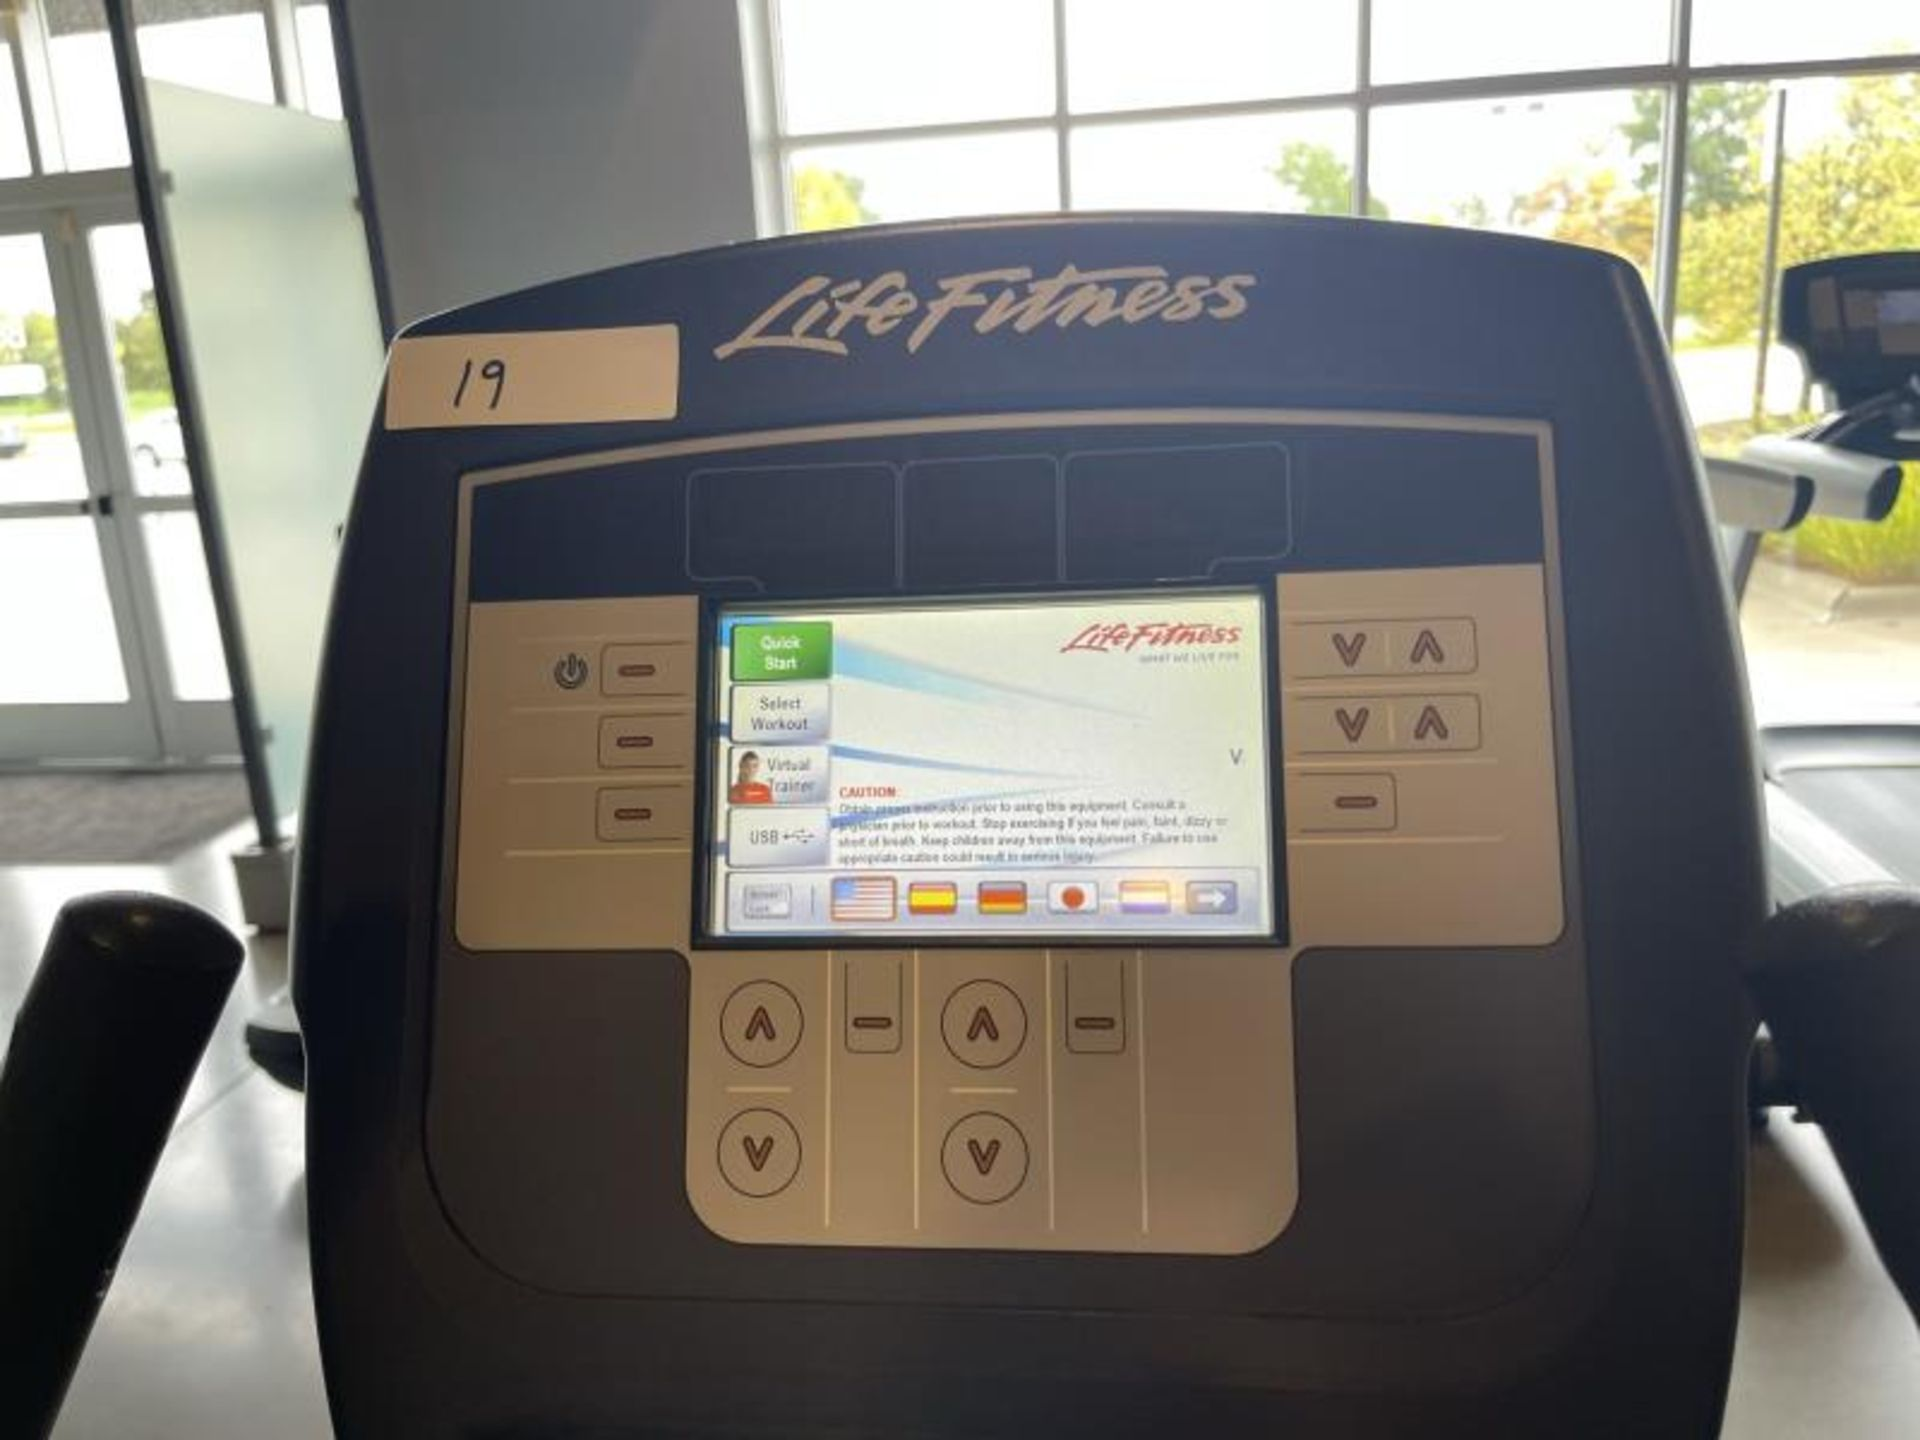 Life Fitness Exercise Bike M: 95CLifecycle, SN: CLV102820 - Image 4 of 4